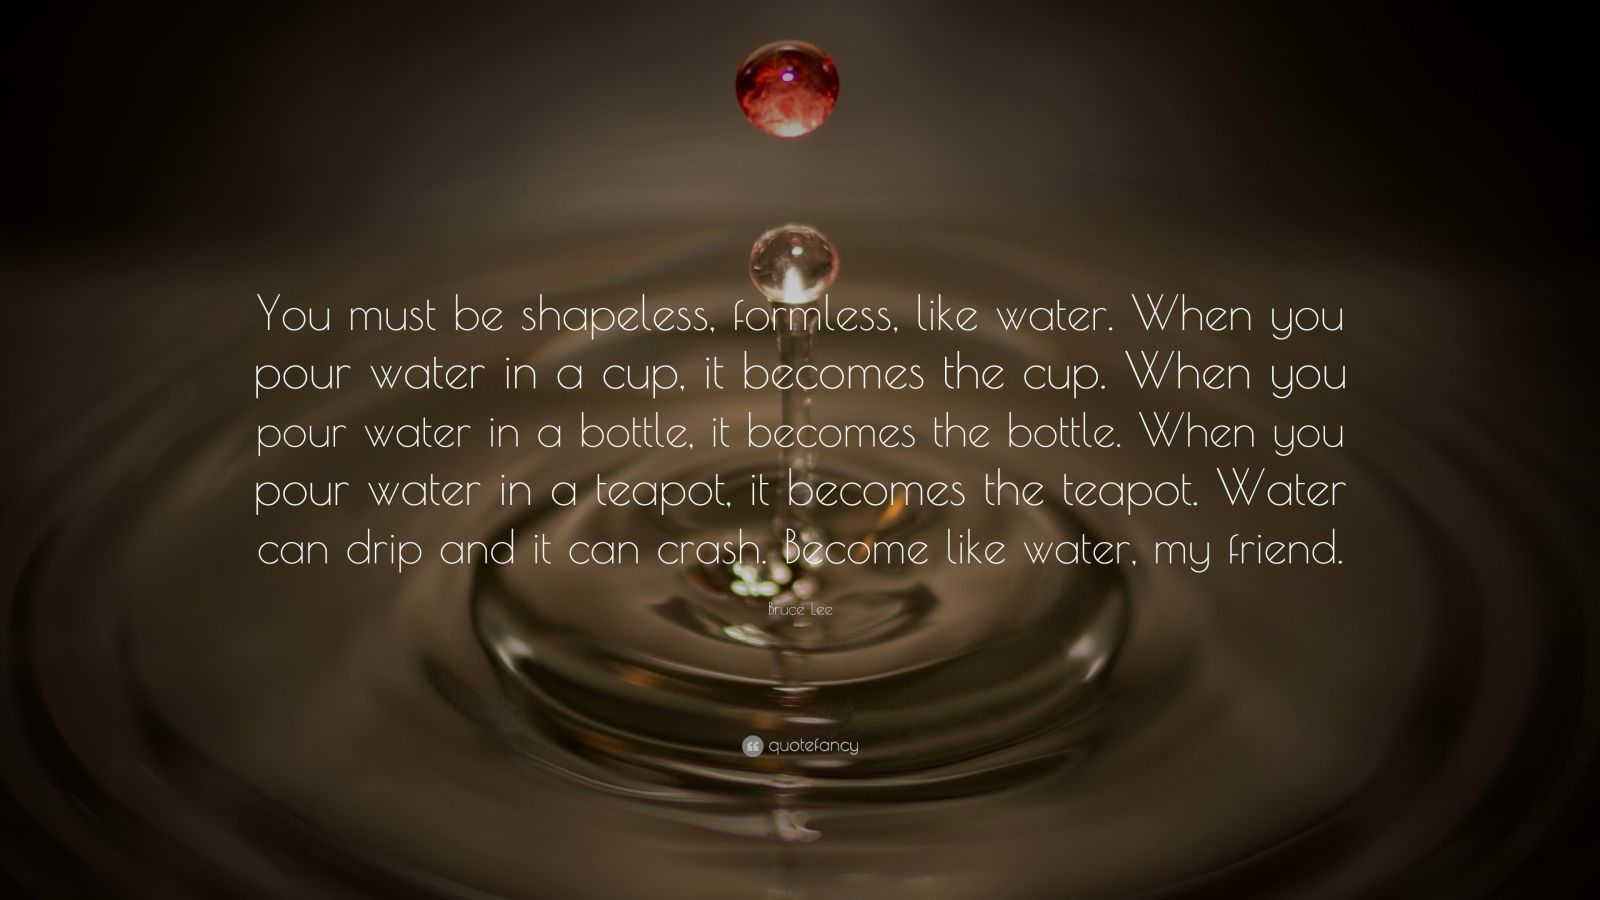 "Bruce Lee Quote: ""You must be shapeless, formless, like water. When you pour water in a cup, it becomes the cup. When you pour water in a bottle, it becomes the bottle. When you pour water in a teapot, it becomes the teapot. Water can drip and it can crash. Become like water, my friend."""